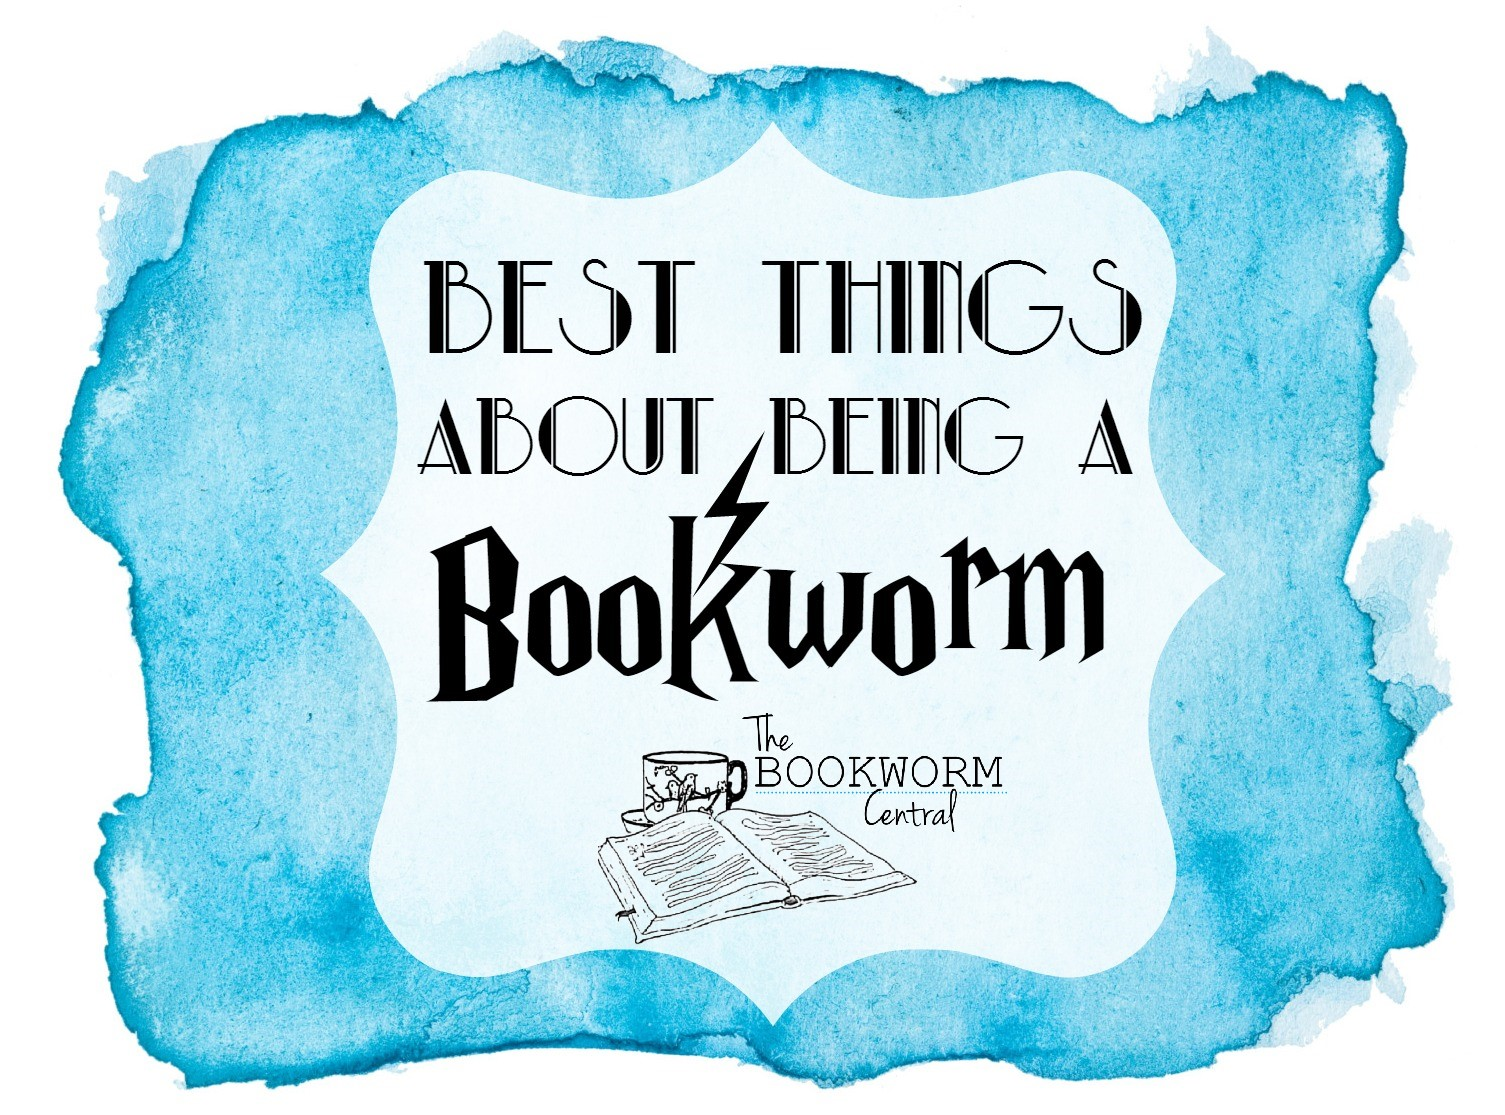 book talk 8 best things about being a bookworm  [ 1505 x 1115 Pixel ]